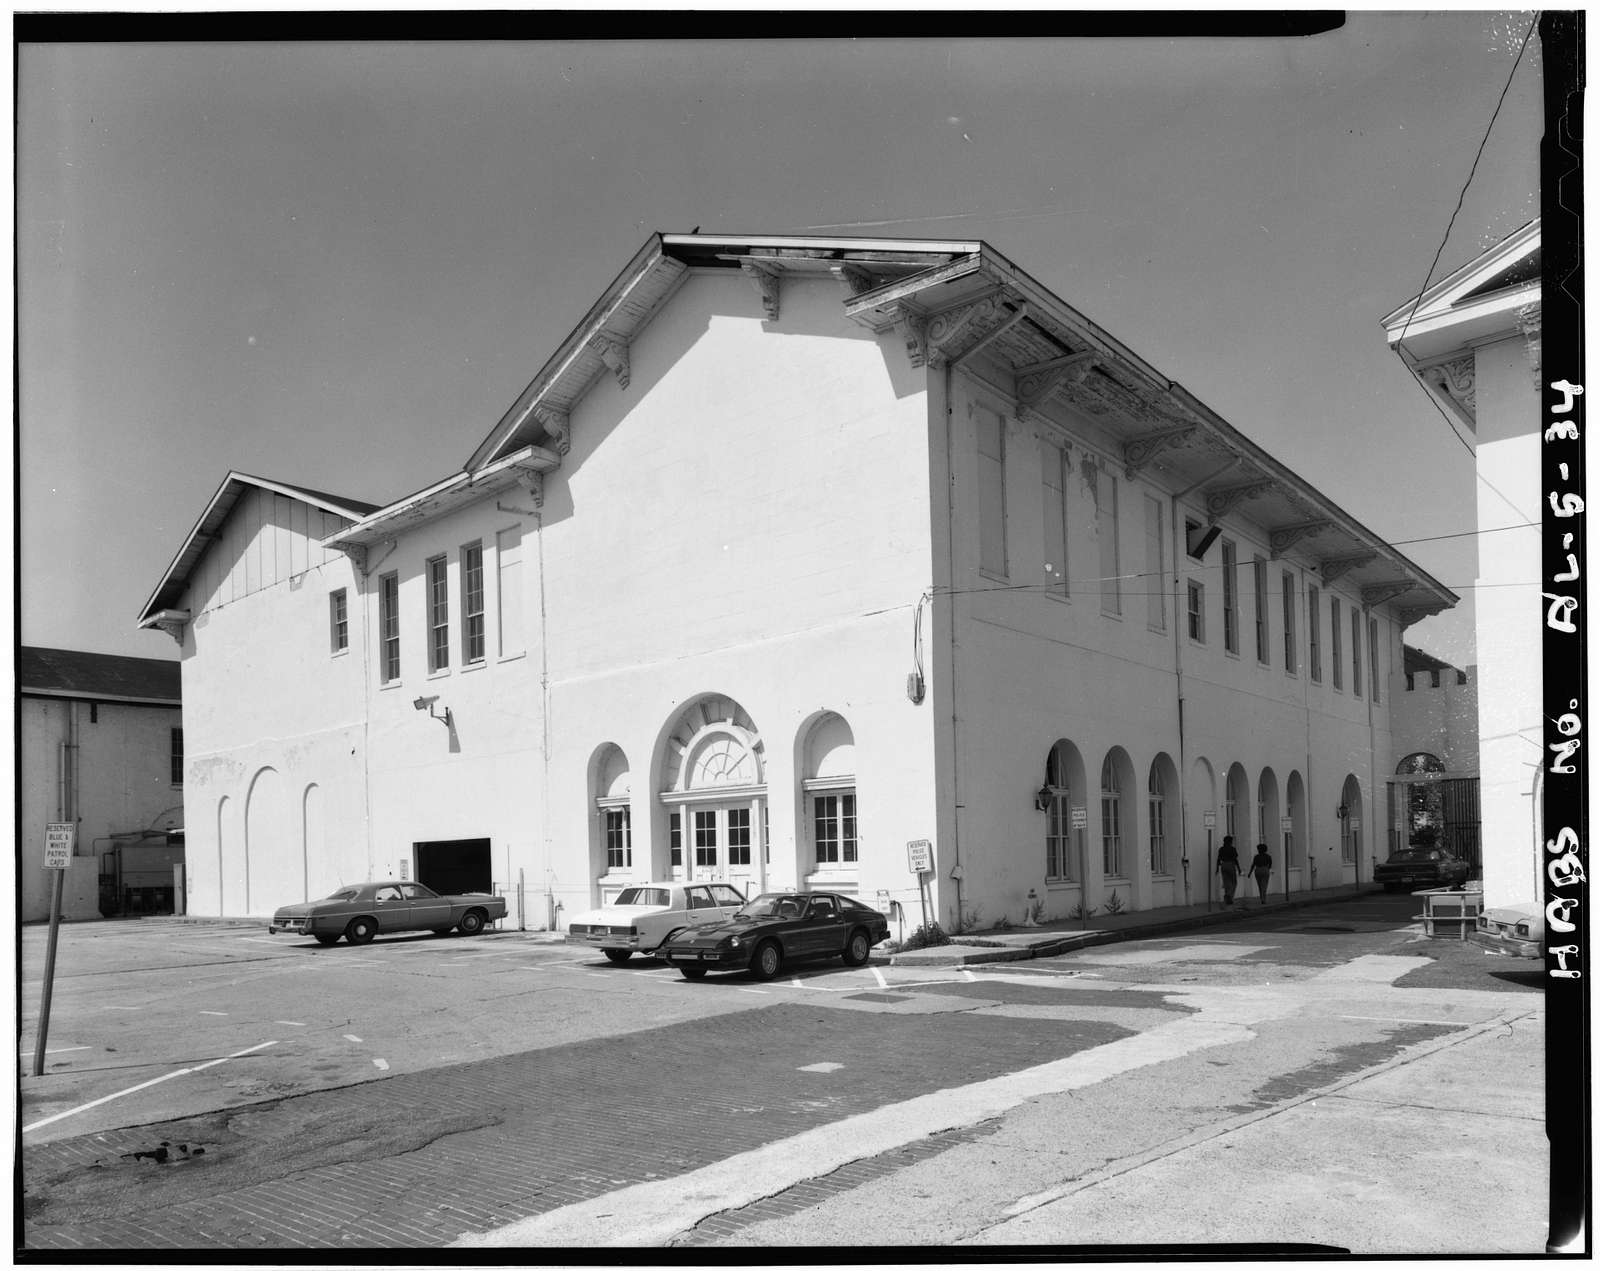 Southern Market & Municipal Building, 107-115 South Royal Street, Mobile, Mobile County, AL